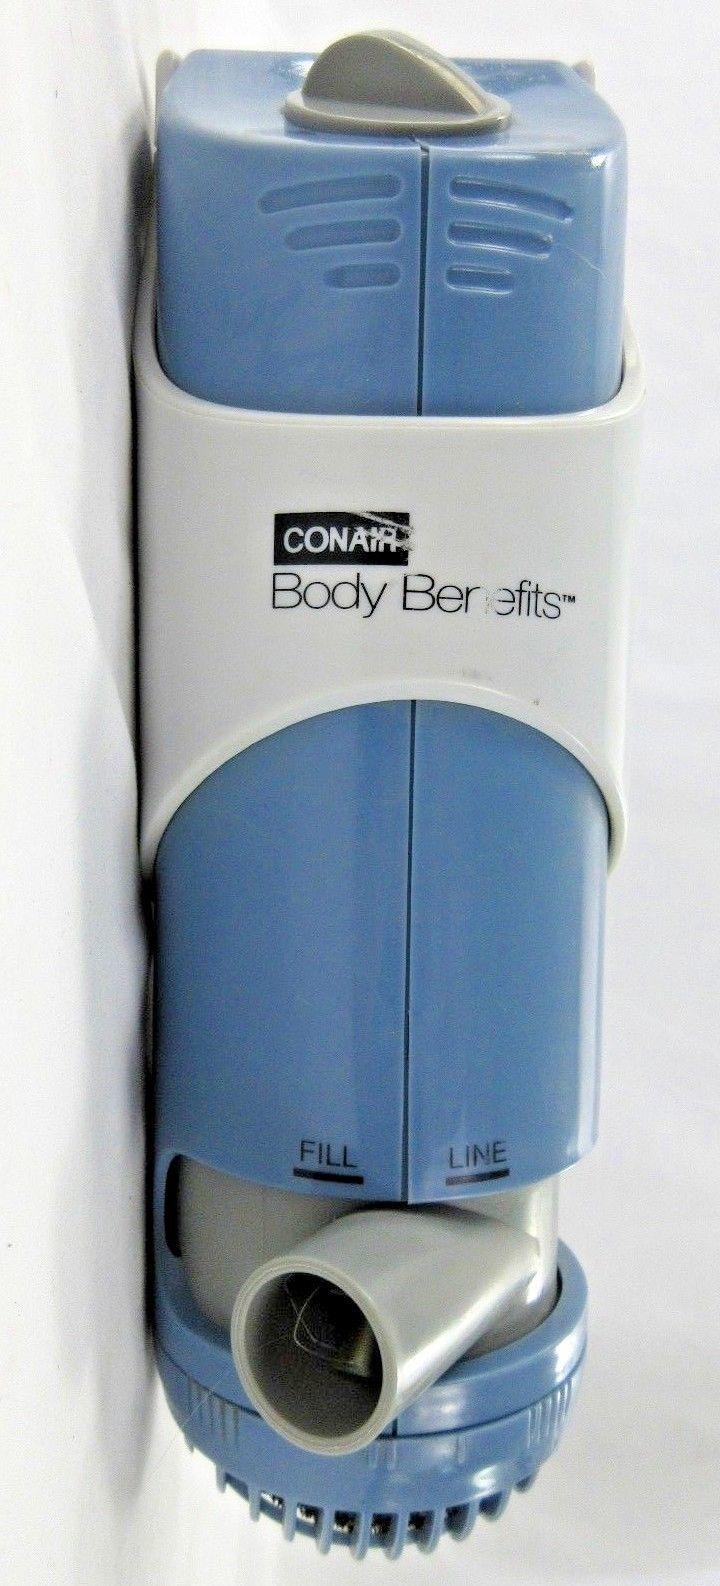 Conair Body Benefits Bath Spa Powerful Water and 50 similar items